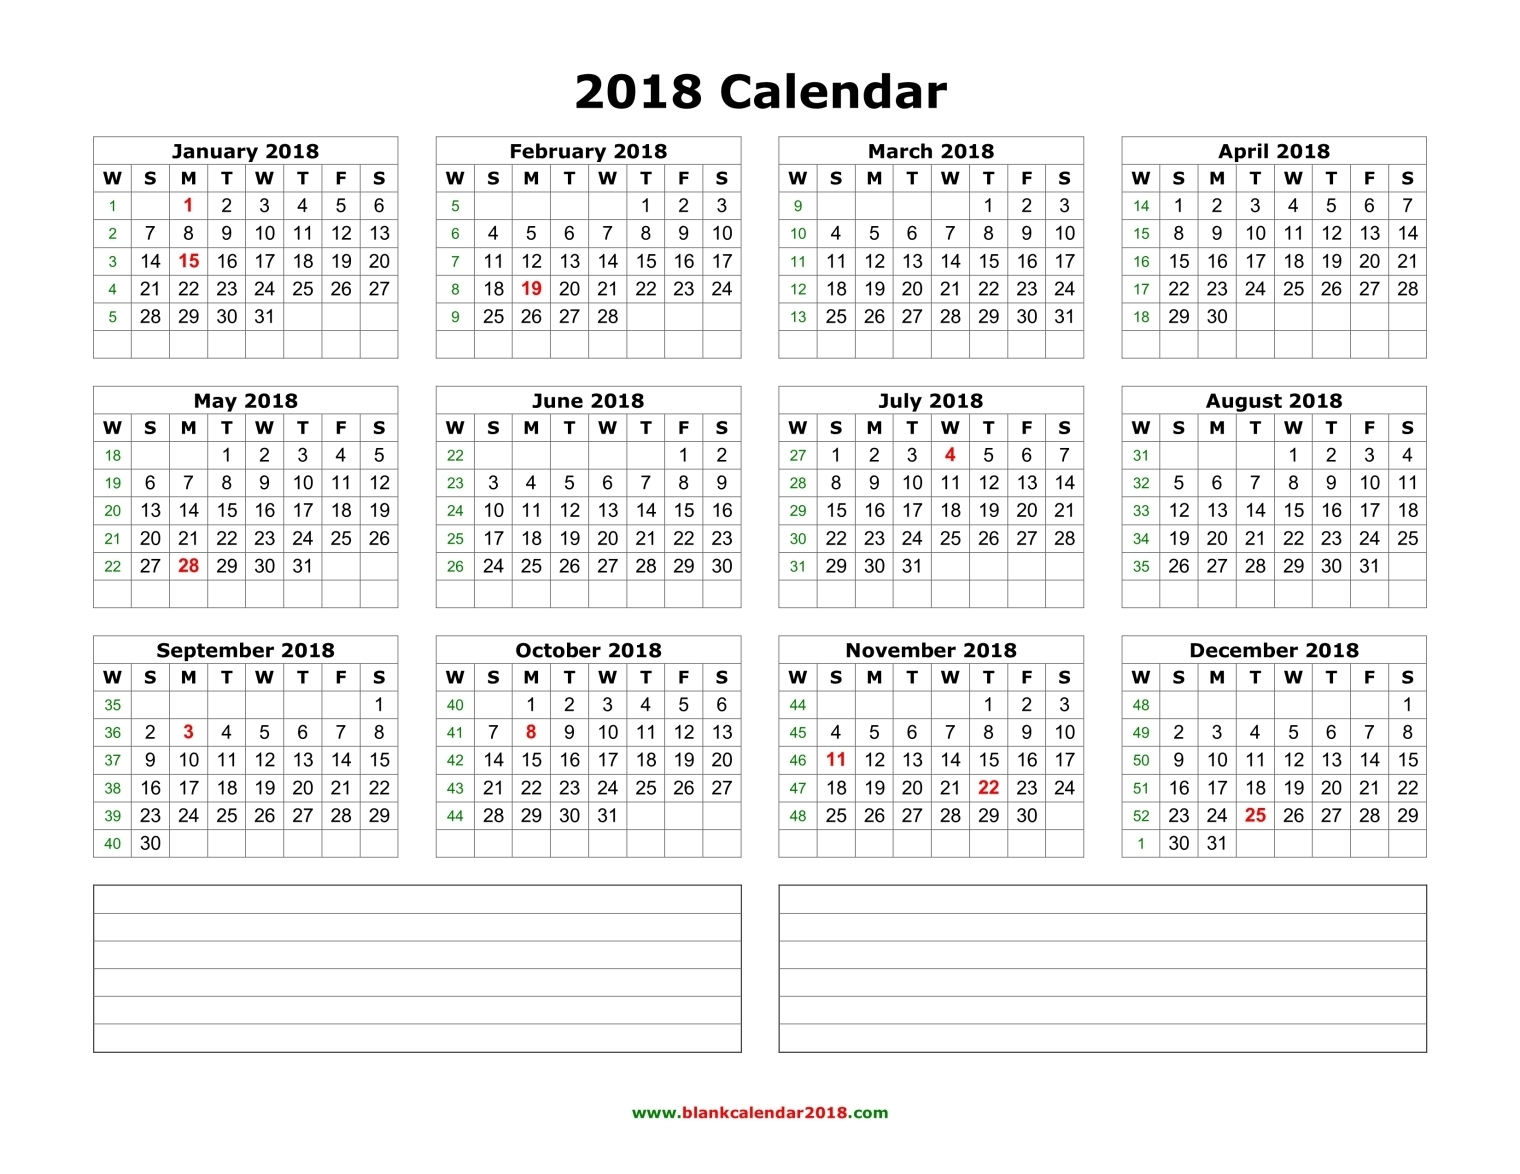 Blank February Calendar 2018 Editable | Whatisthedatetoday.Com